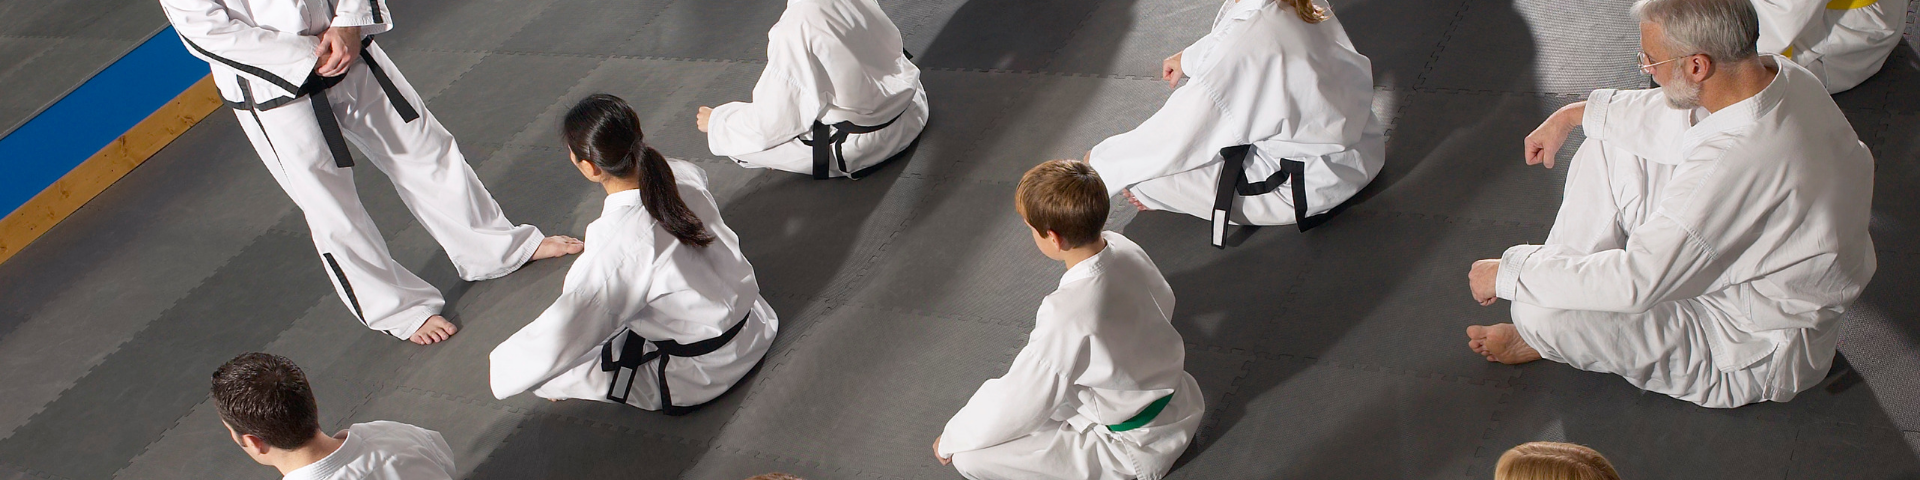 HEALTH // The Positive Impact Of Martial Arts